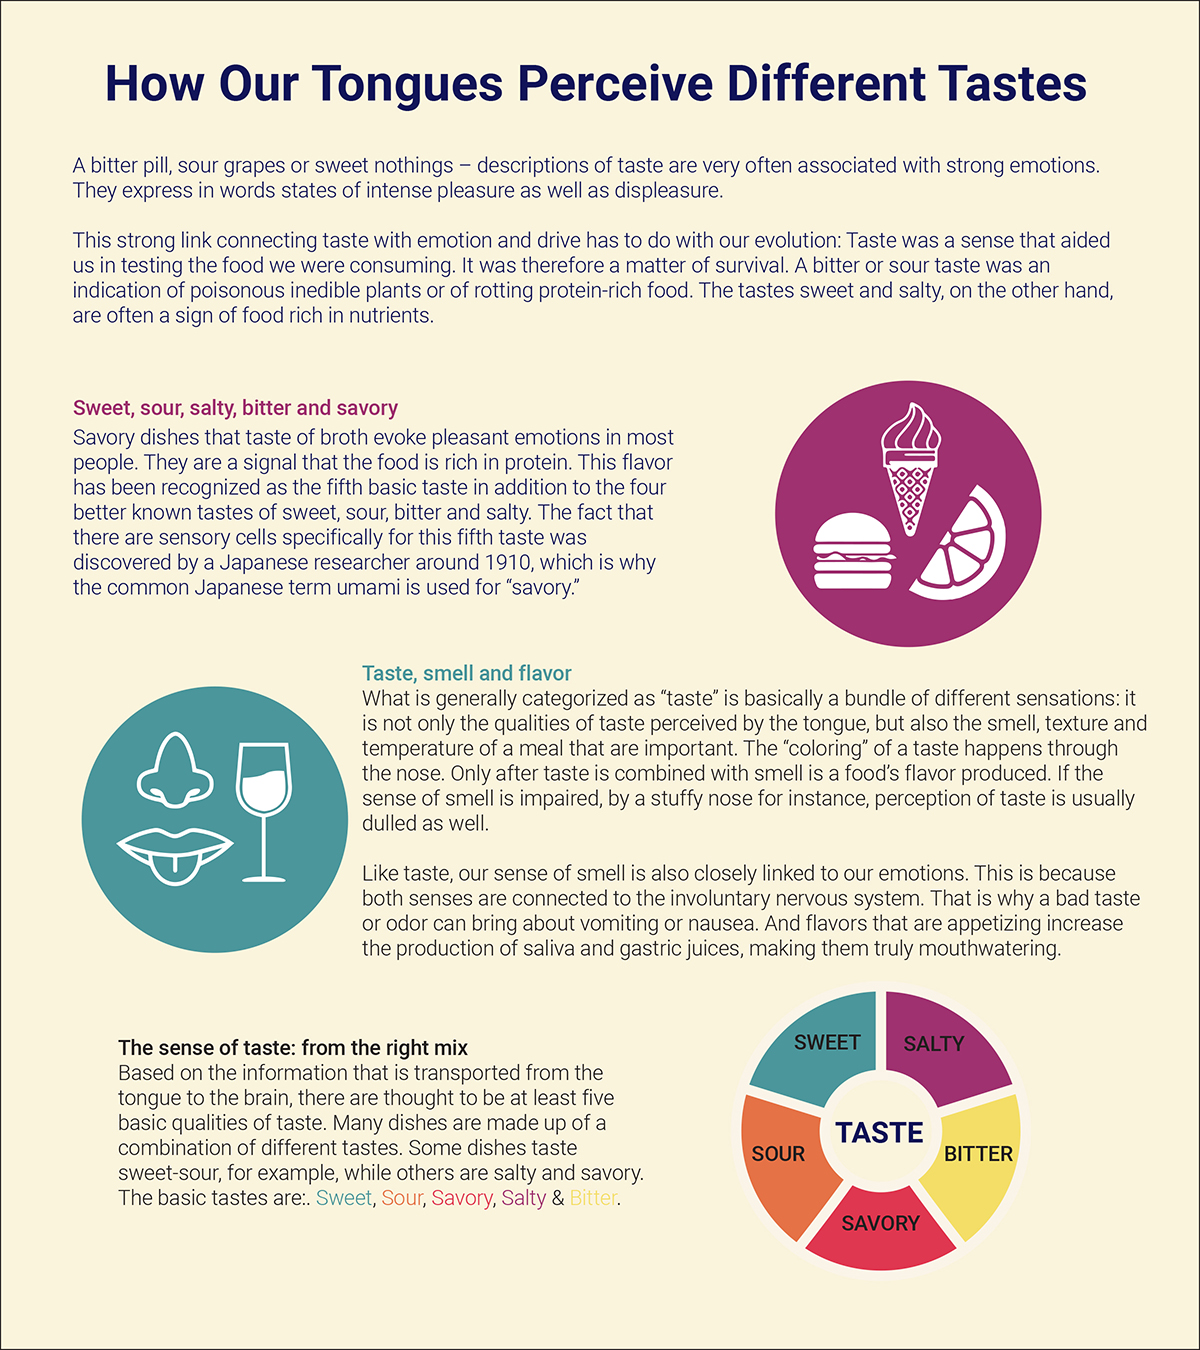 How Our Tongues Perceive Different Tastes